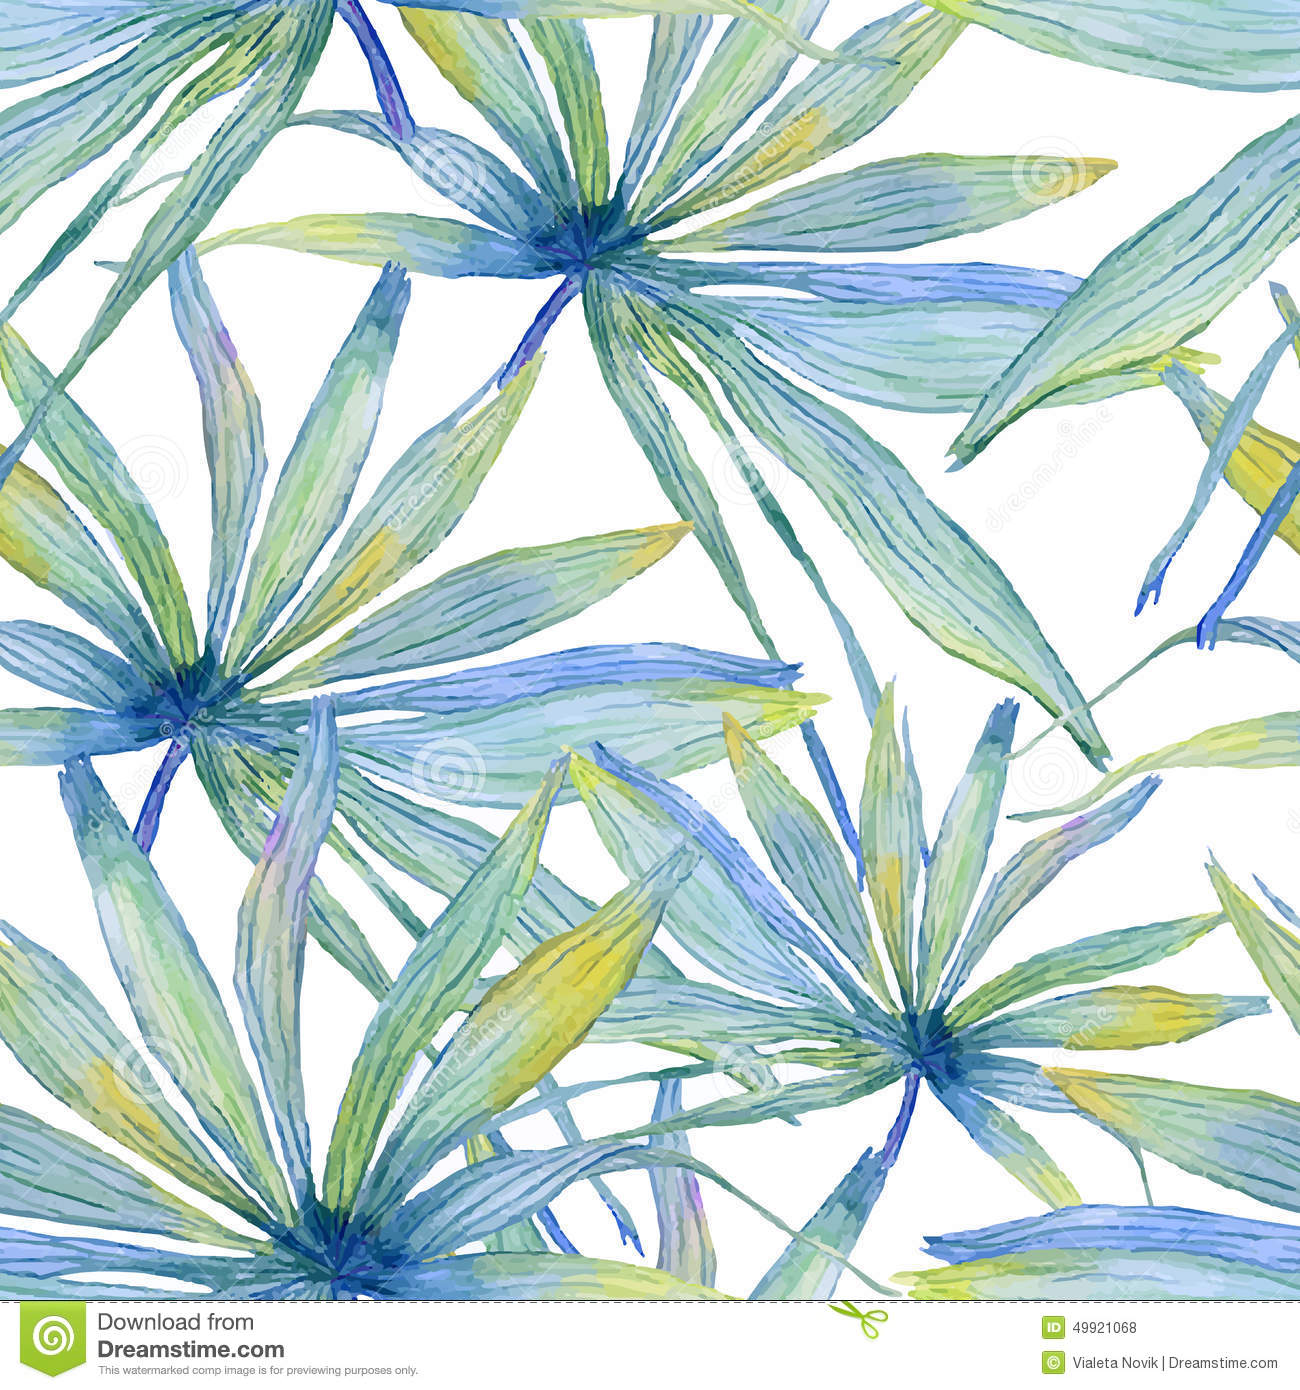 Watercolor seamless pattern with palm leaves